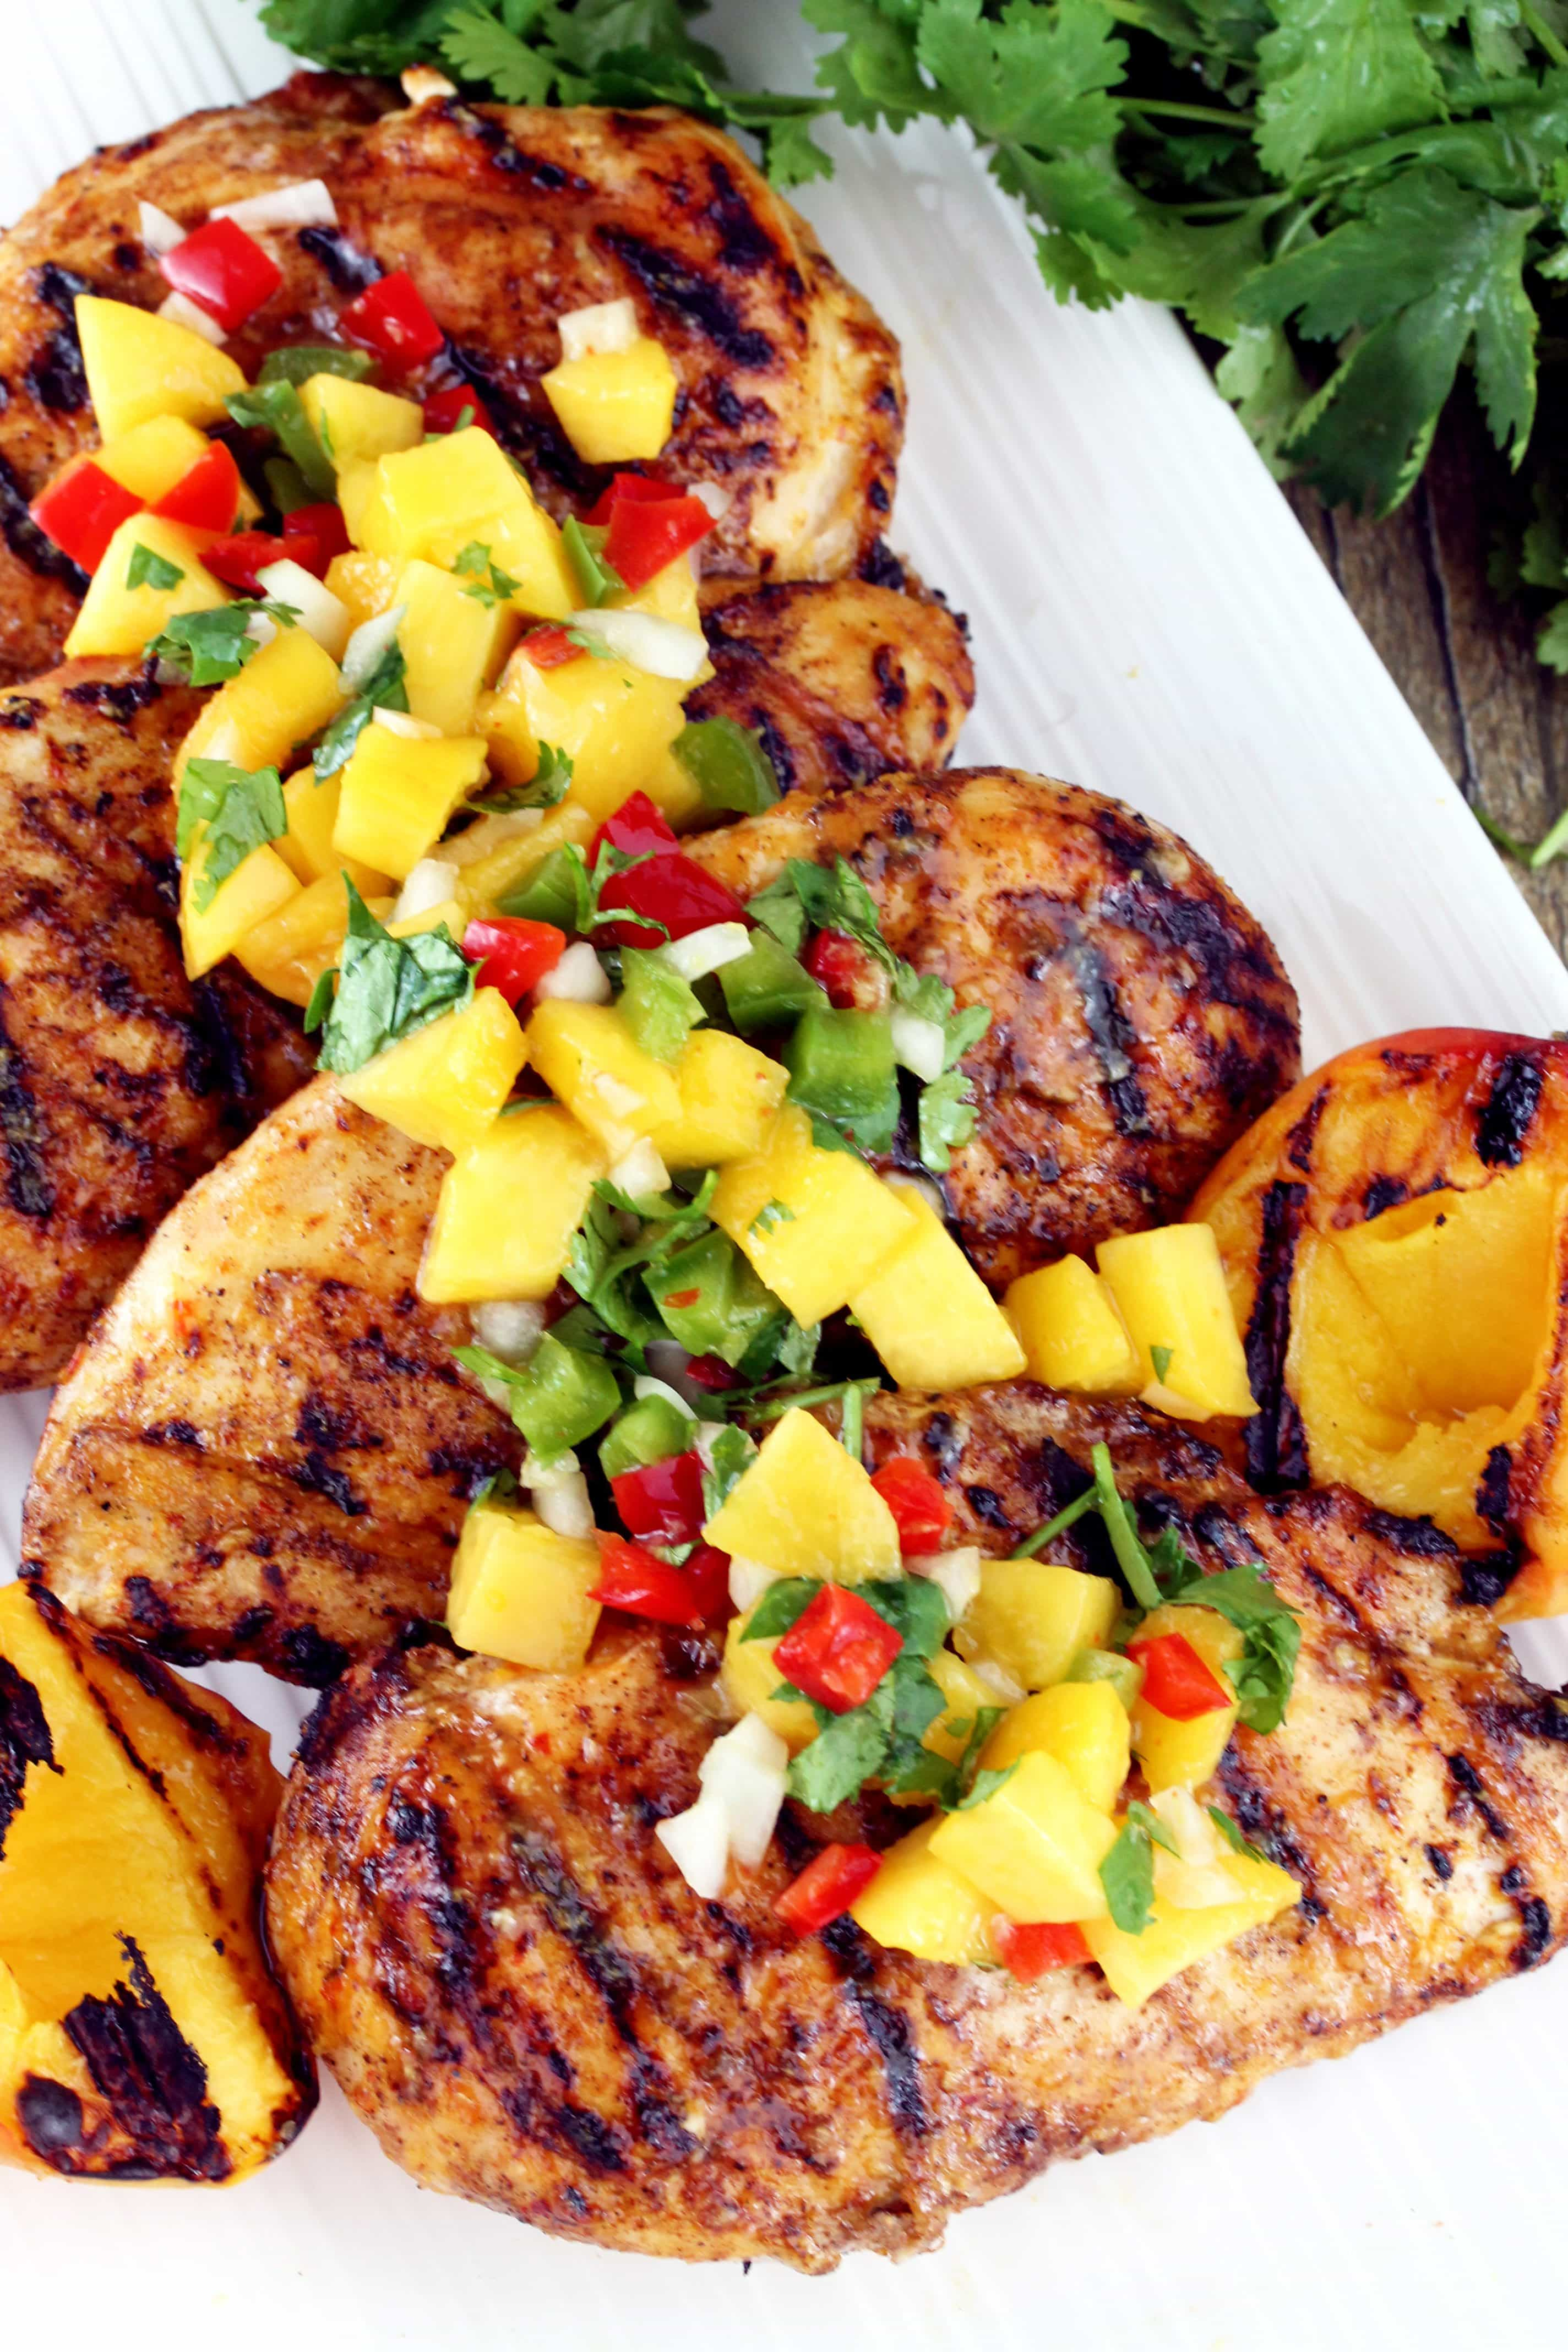 Chicken is grilled to perfection with a spicy peach glaze and then topped off with a fresh peach salsa in this Chipotle-Peach Glazed Grilled Chicken Breast.